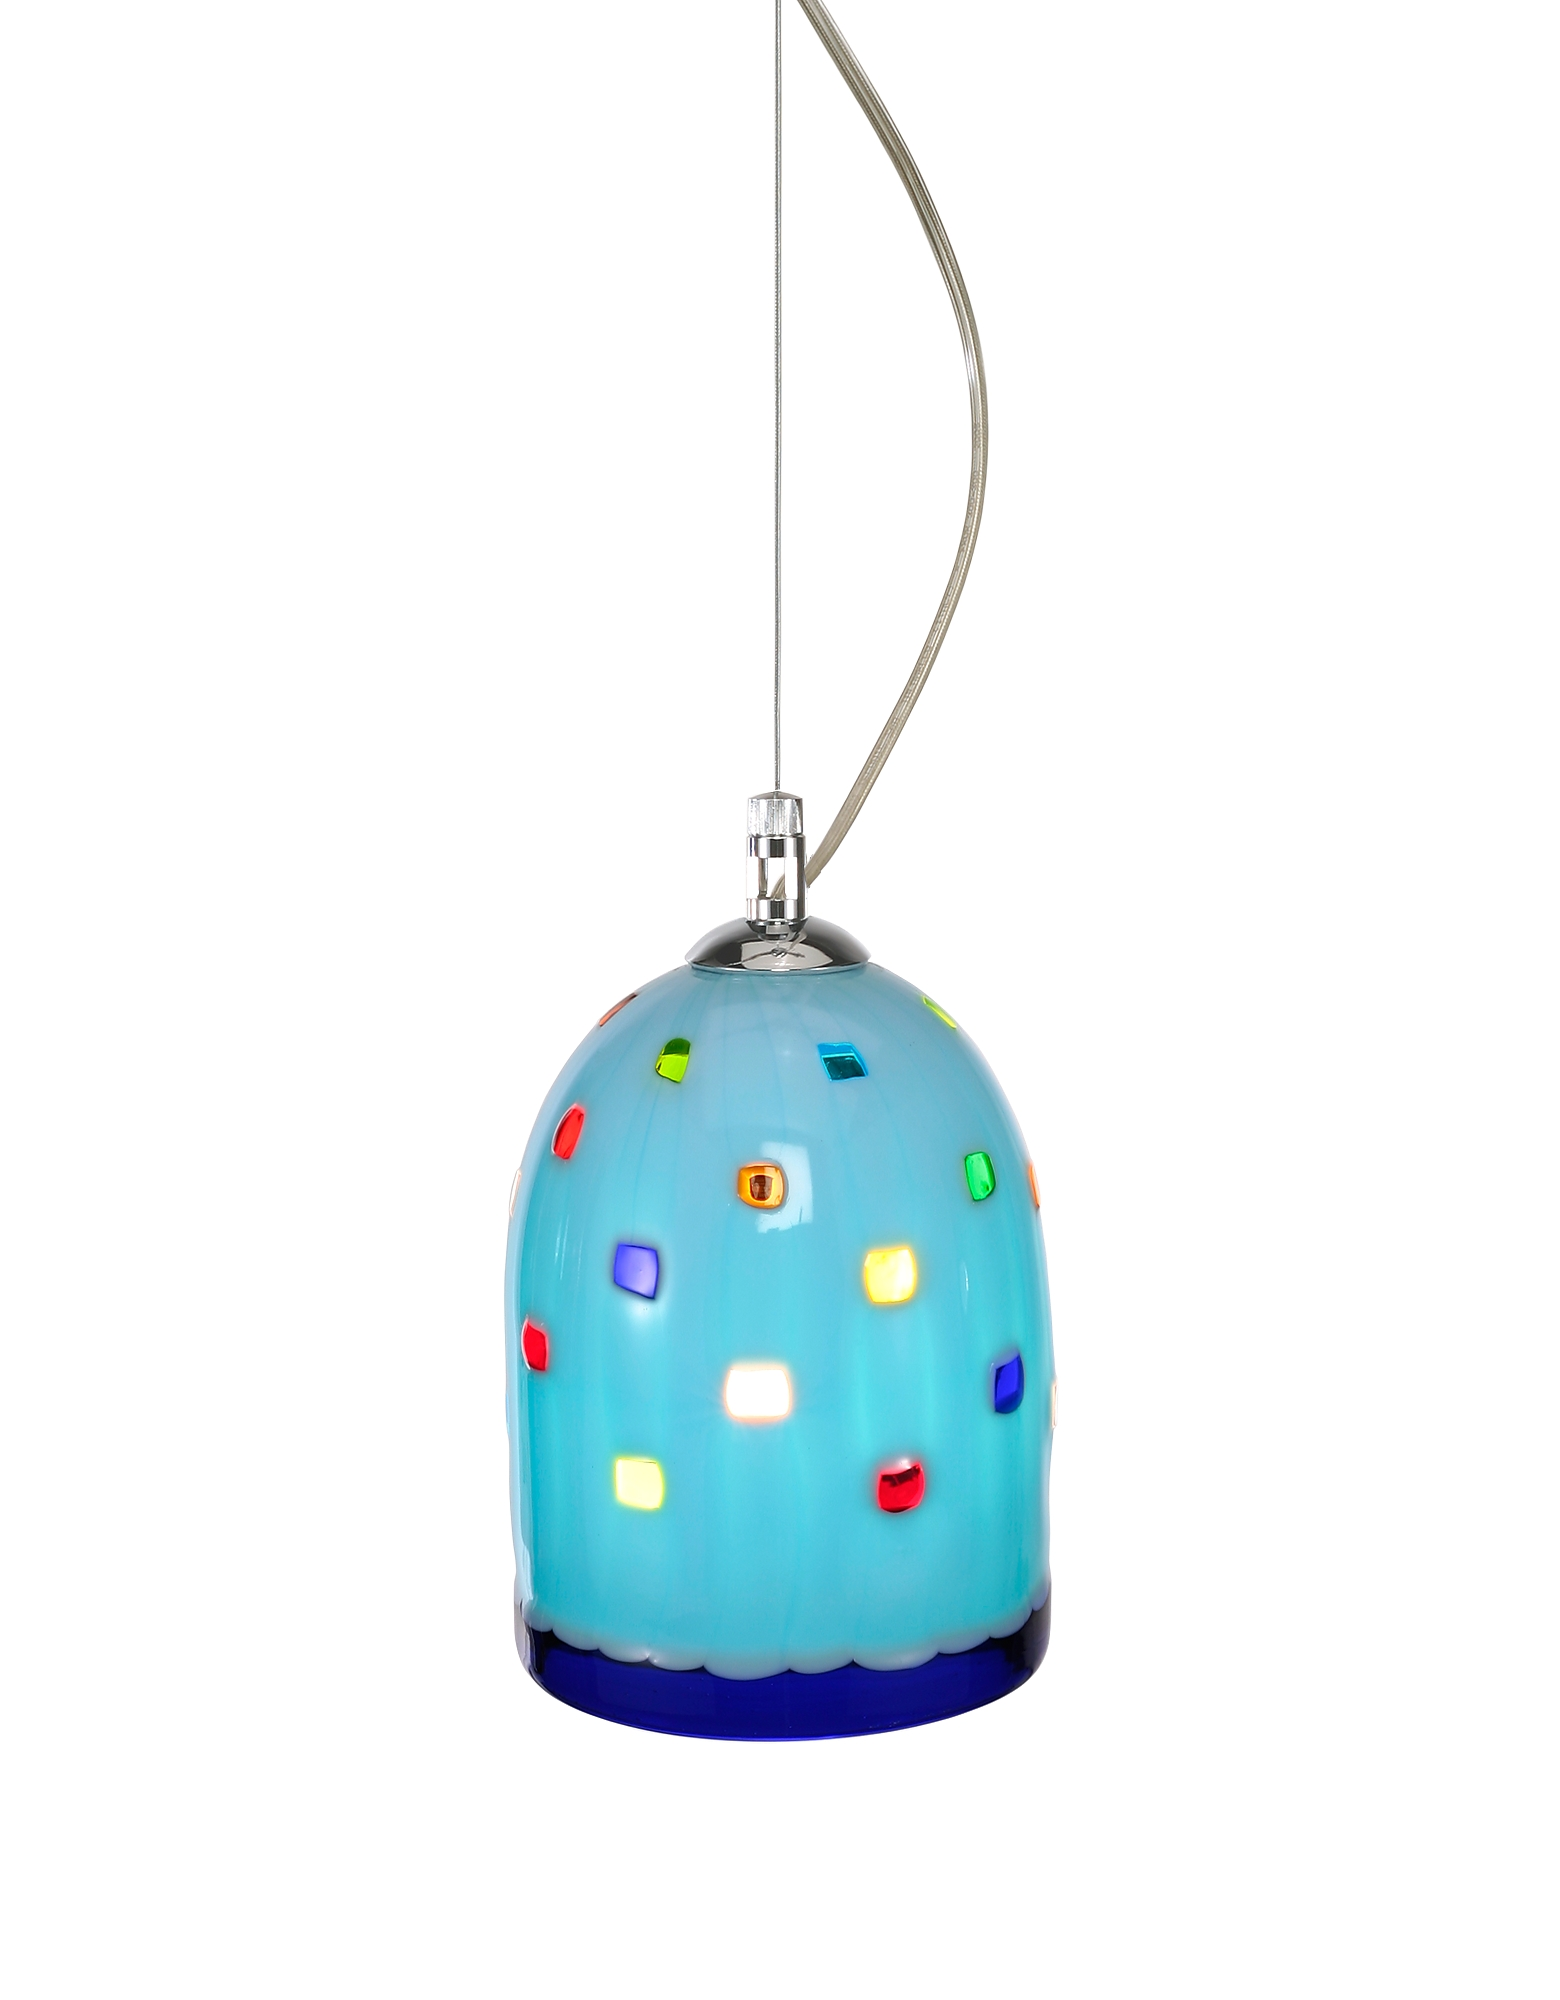 Voltolina Designer Decor & Lighting, Meg - Sky Blue Murano Handmade Glass Pendant Lamp